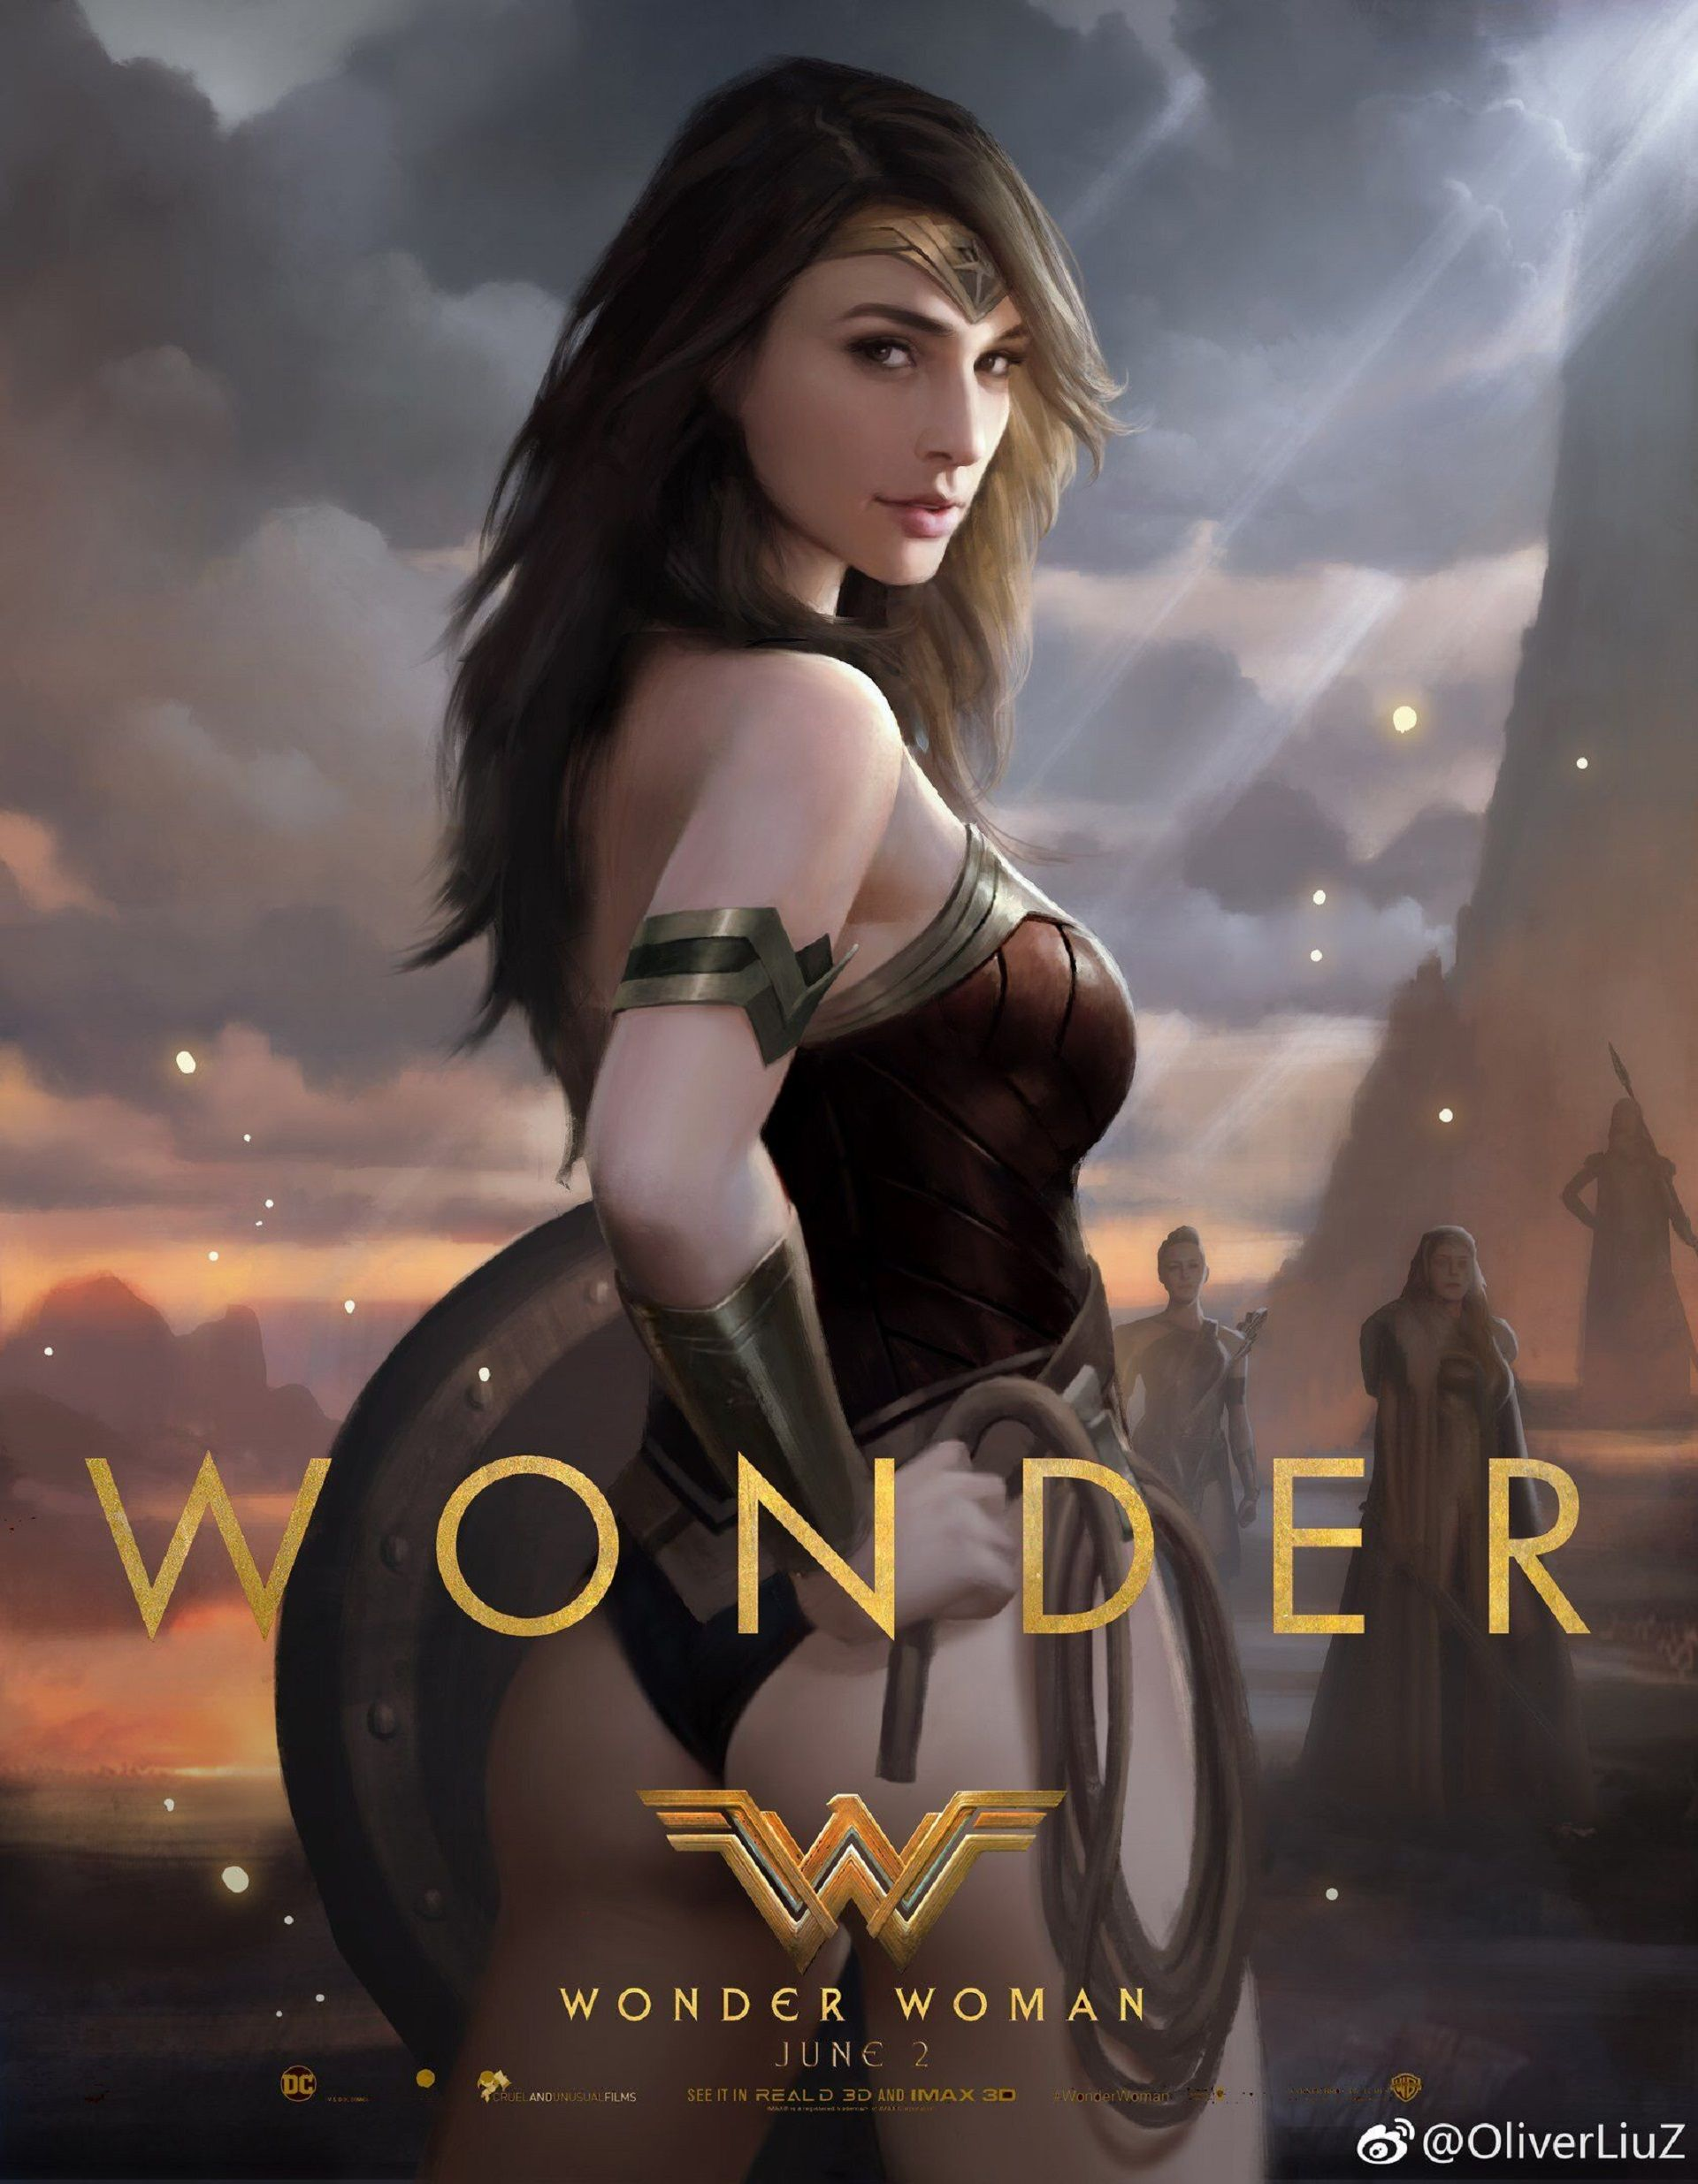 Wonder Woman Fan Art Hd Wonder Woman Hd 4k Wallpapers 2019 Wonder Woman Fan Art Hd Wallpapers Wonder W Superhero Poster Wonder Woman Art Wonder Woman Fan Art